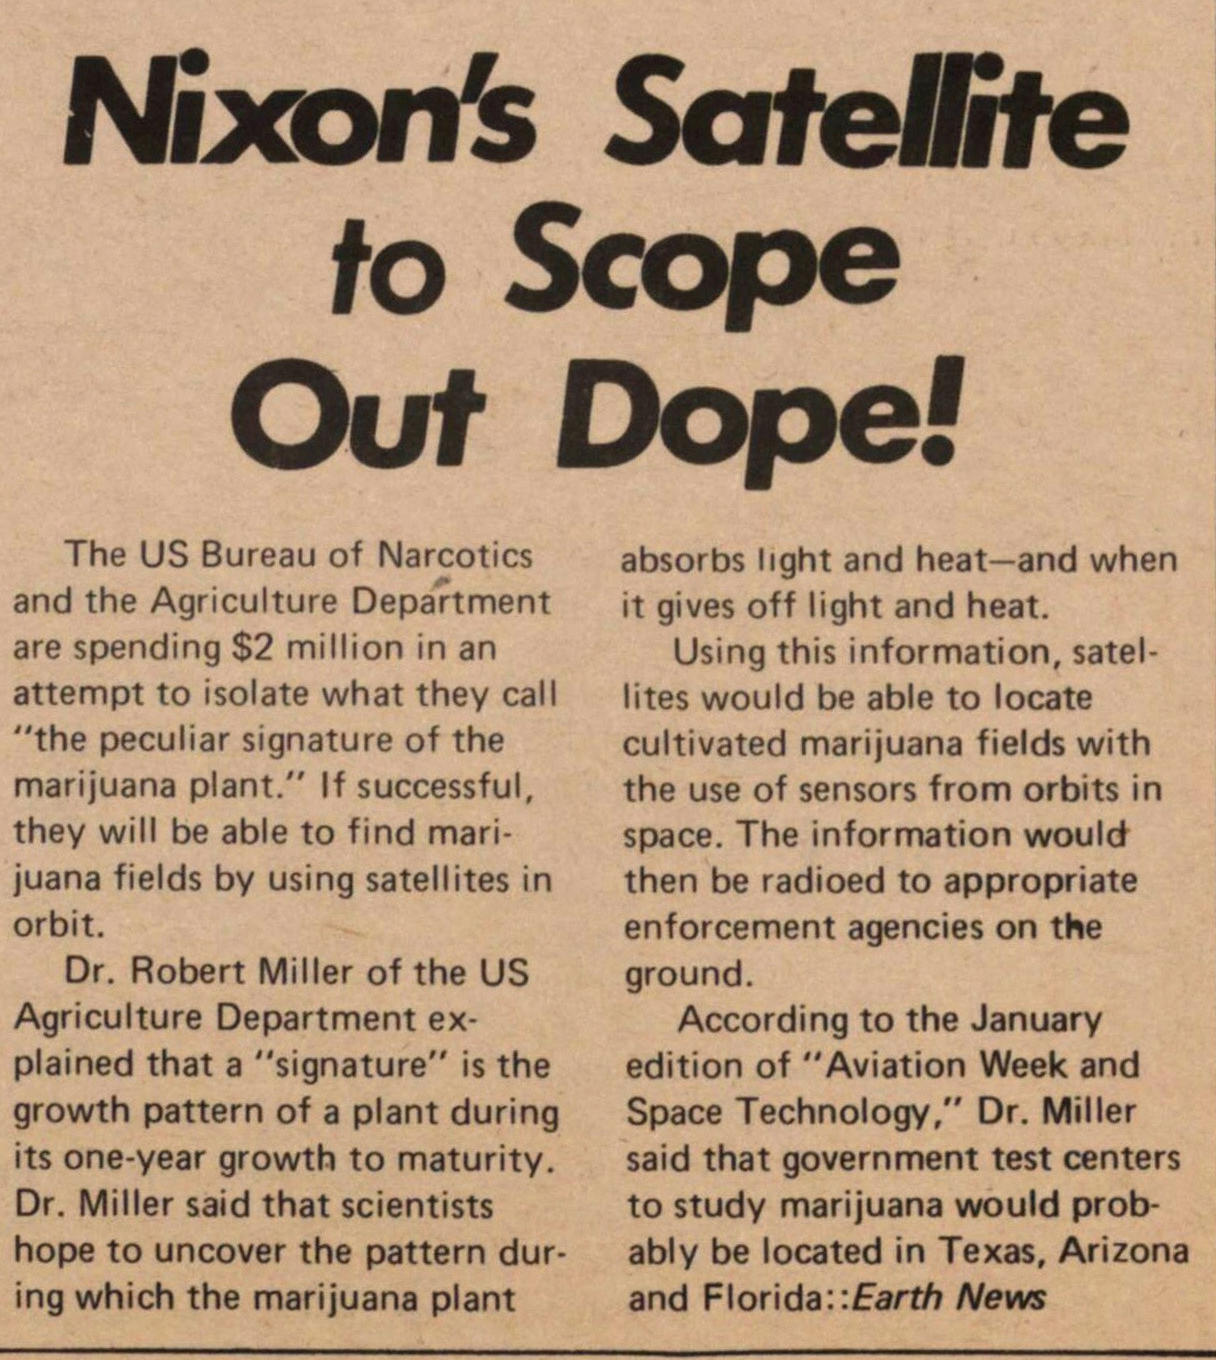 Nixon's Satellite To Scope Out Dope! image